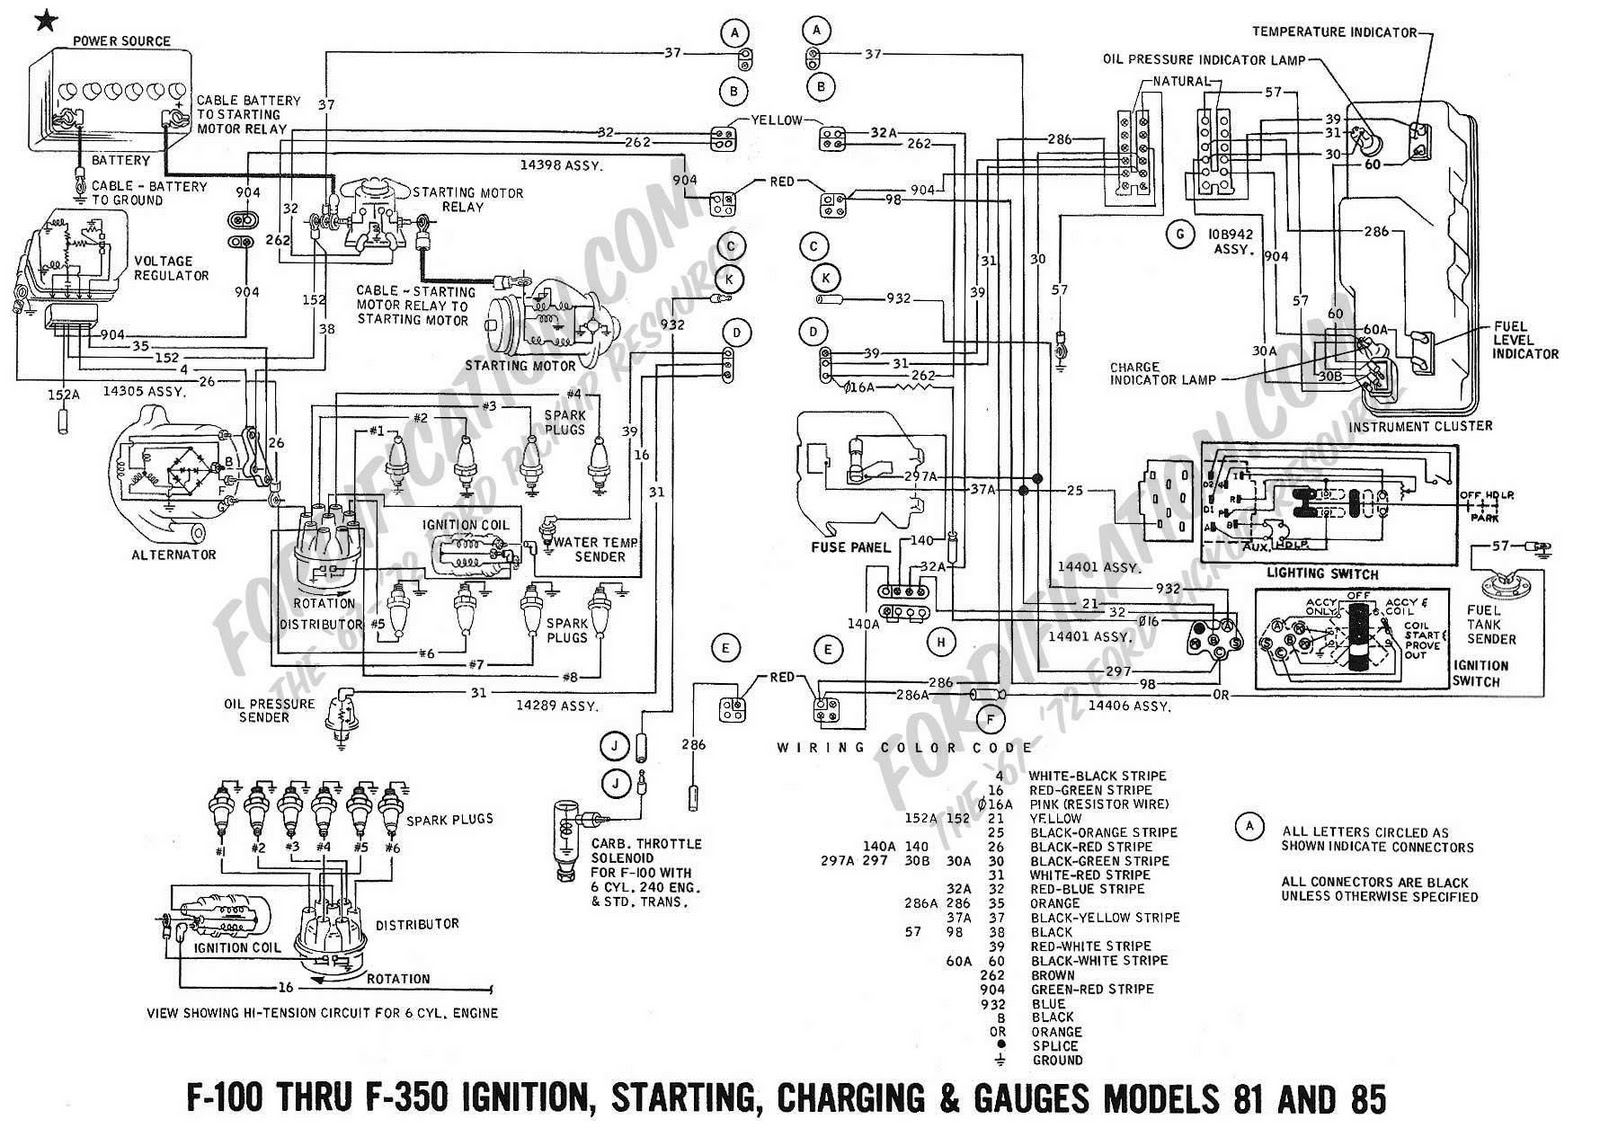 1993 f350 wiring diagram wiring diagram1970 ford wiring wiring diagram 1993